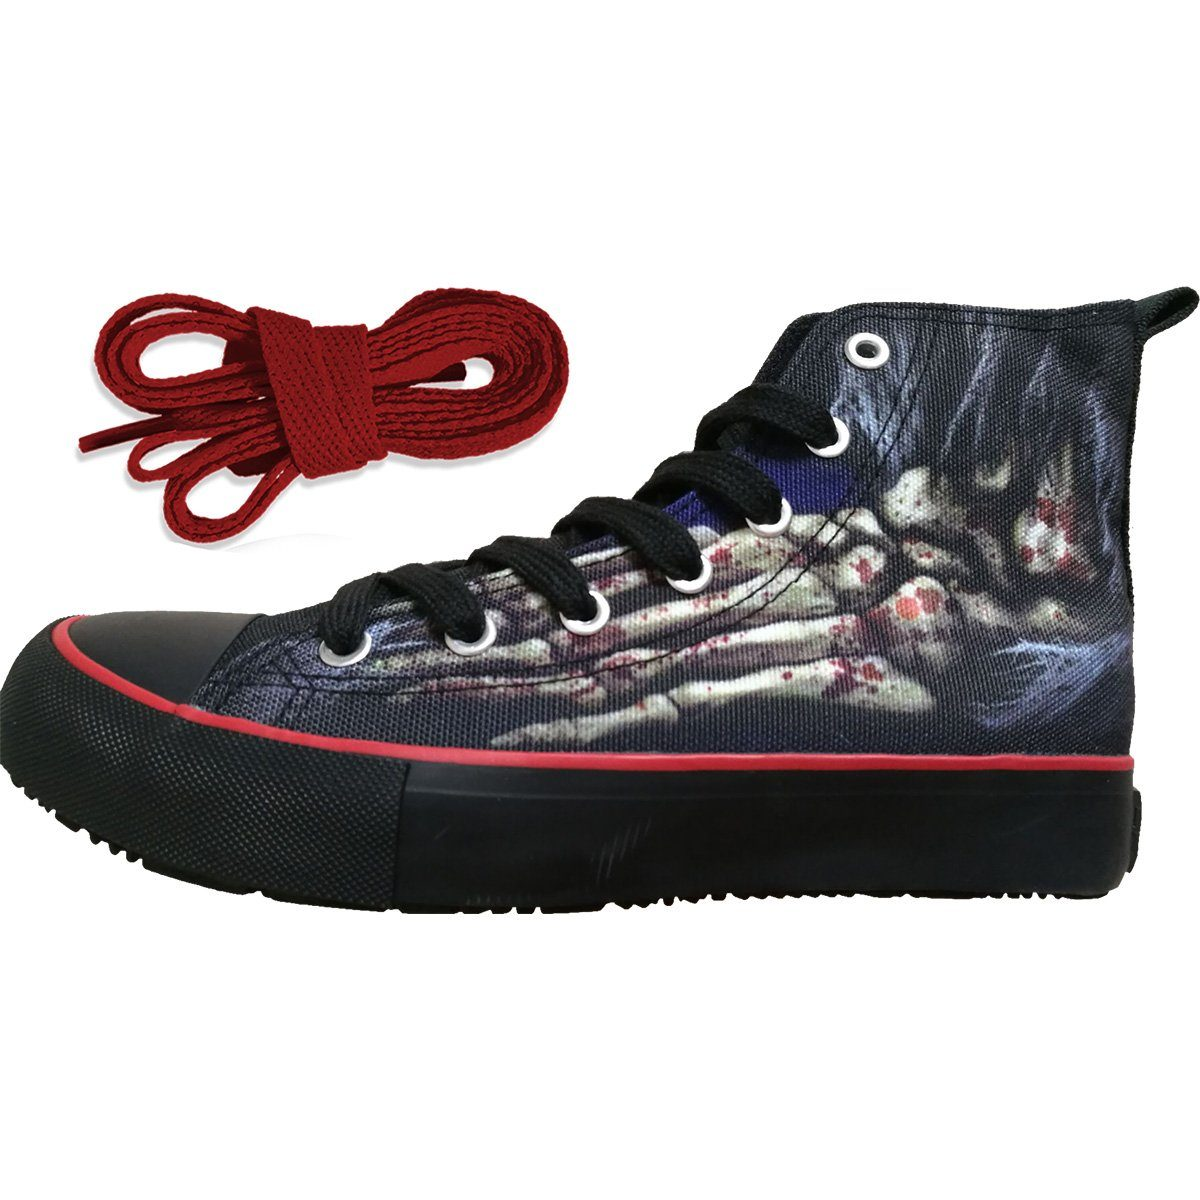 Foot Bone Women's High-Top Sneakers - Rebels Depot